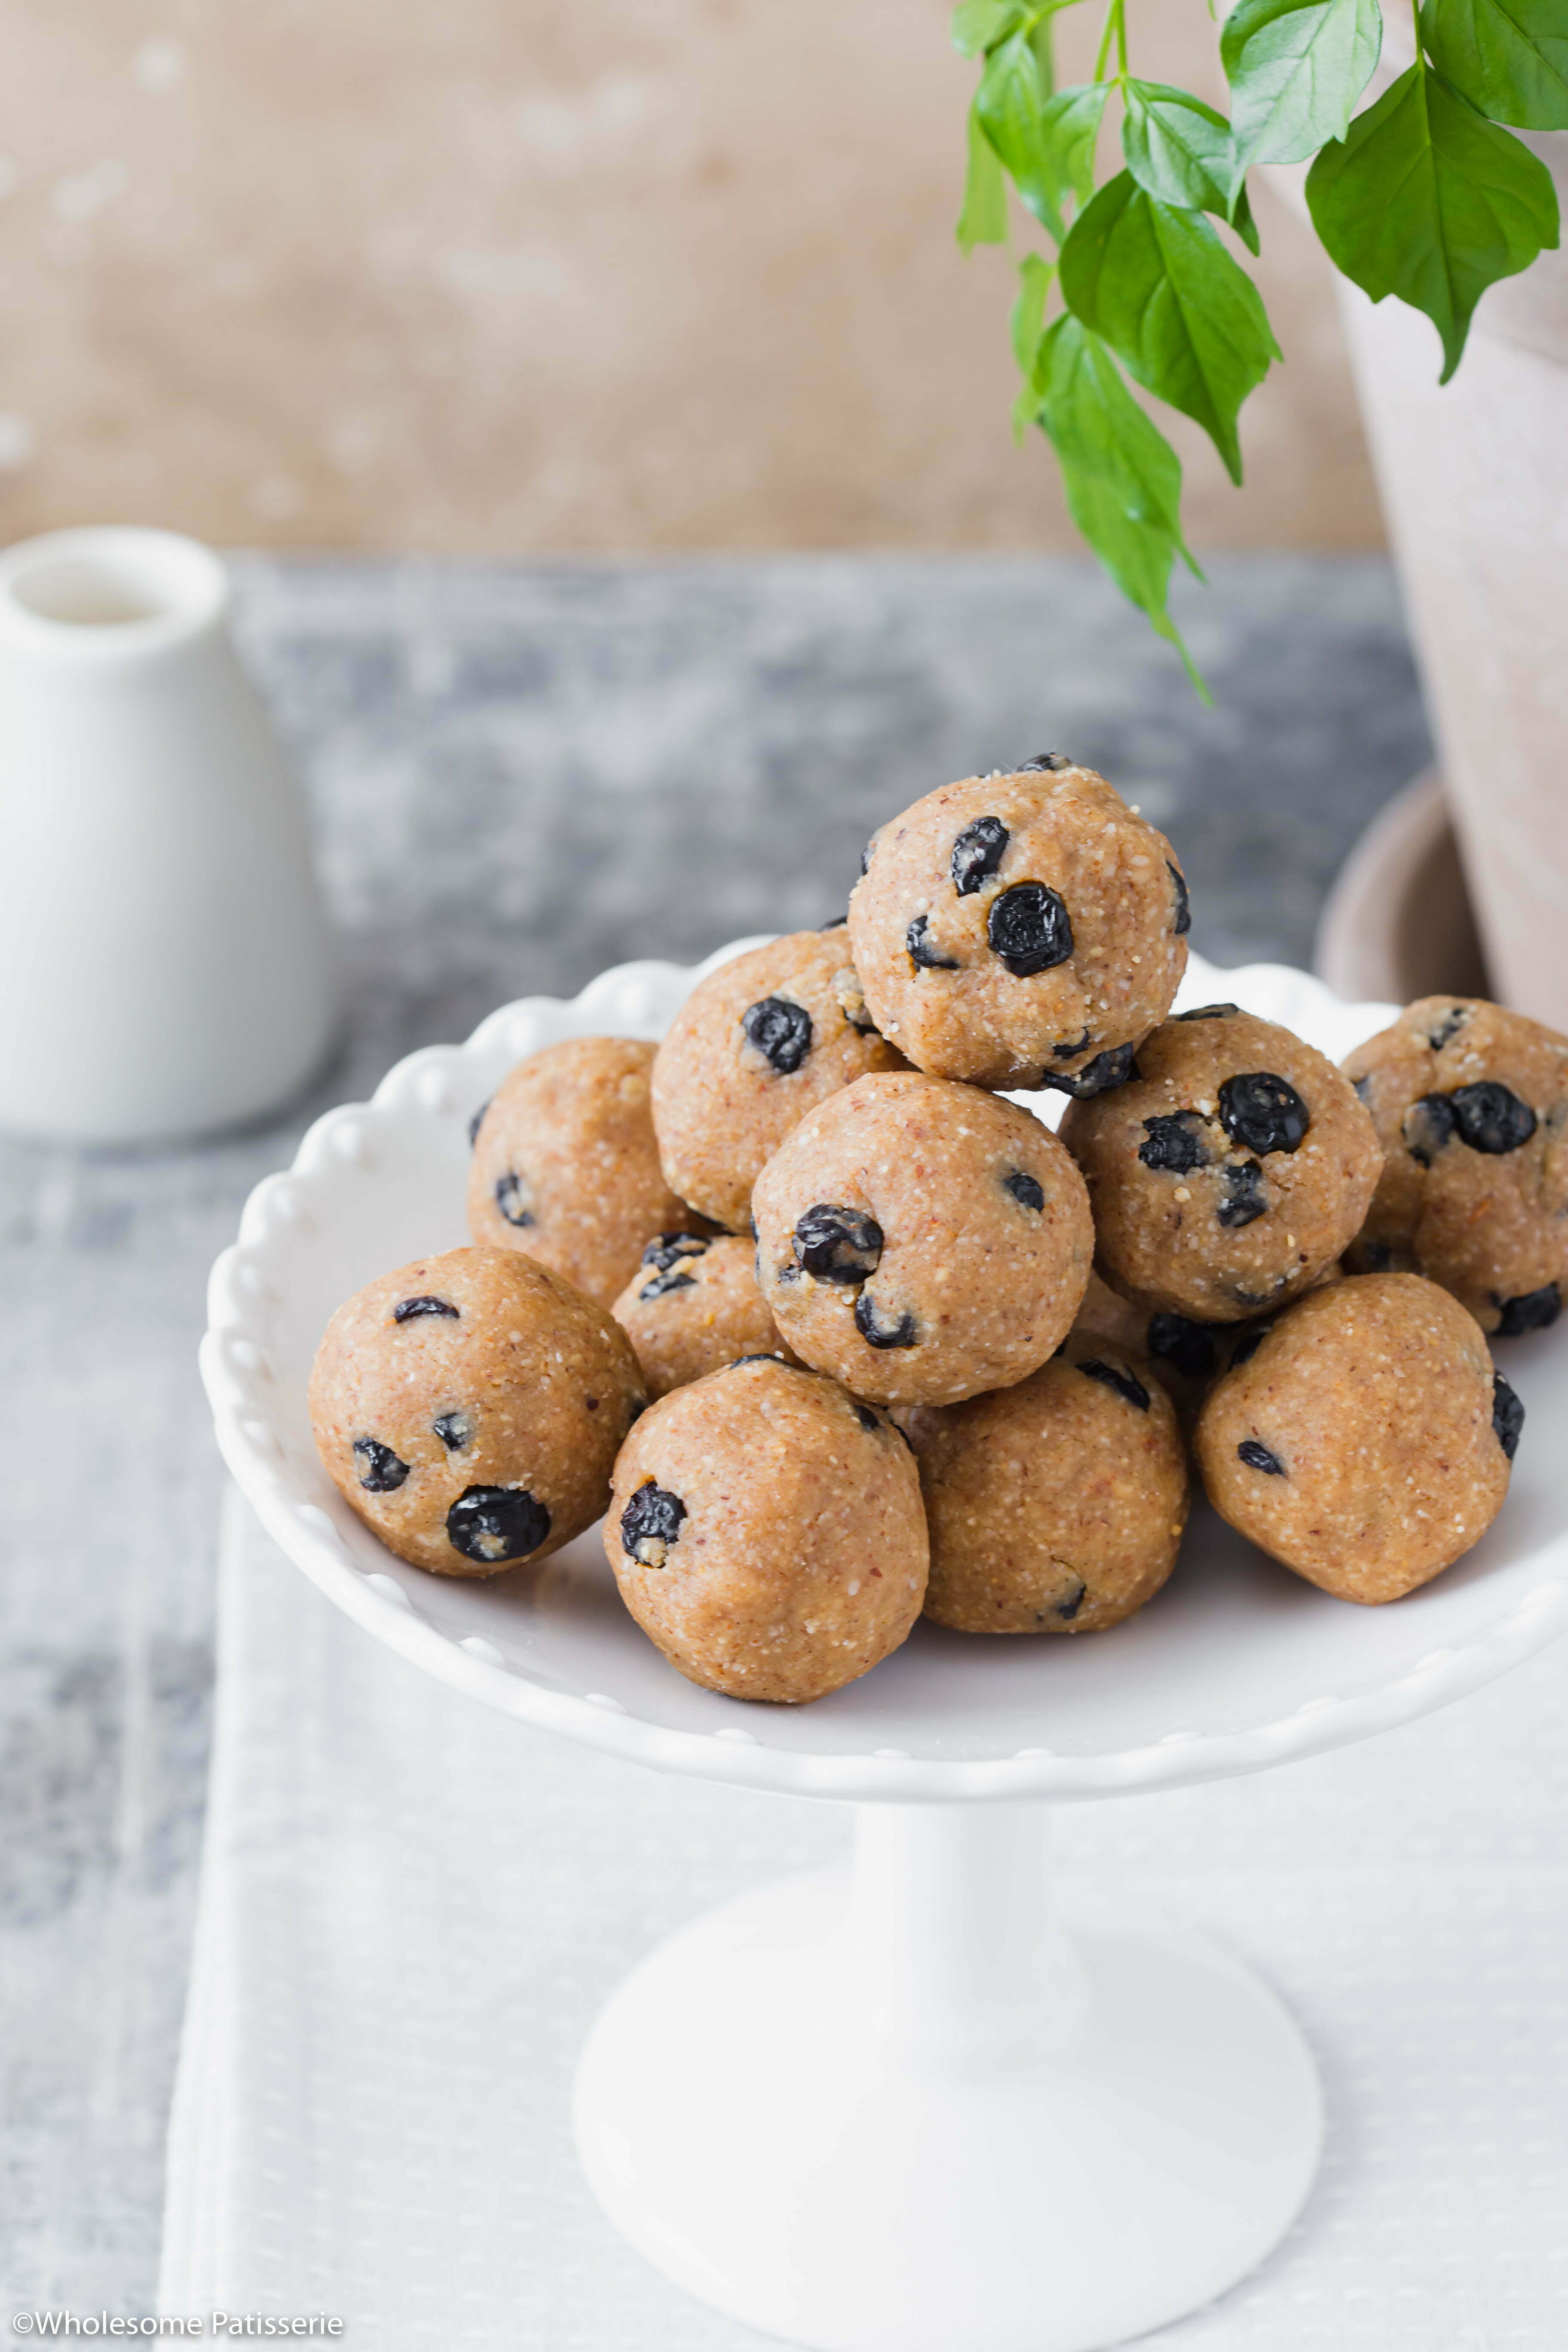 Blueberry Muffin Bliss Balls! A satisfying snack packed full of healthy fats, spiced with a touch of ground cinnamon and cardamom brings these more into baked muffin territory. Add dried blueberries and you have yourself one tasty treat!